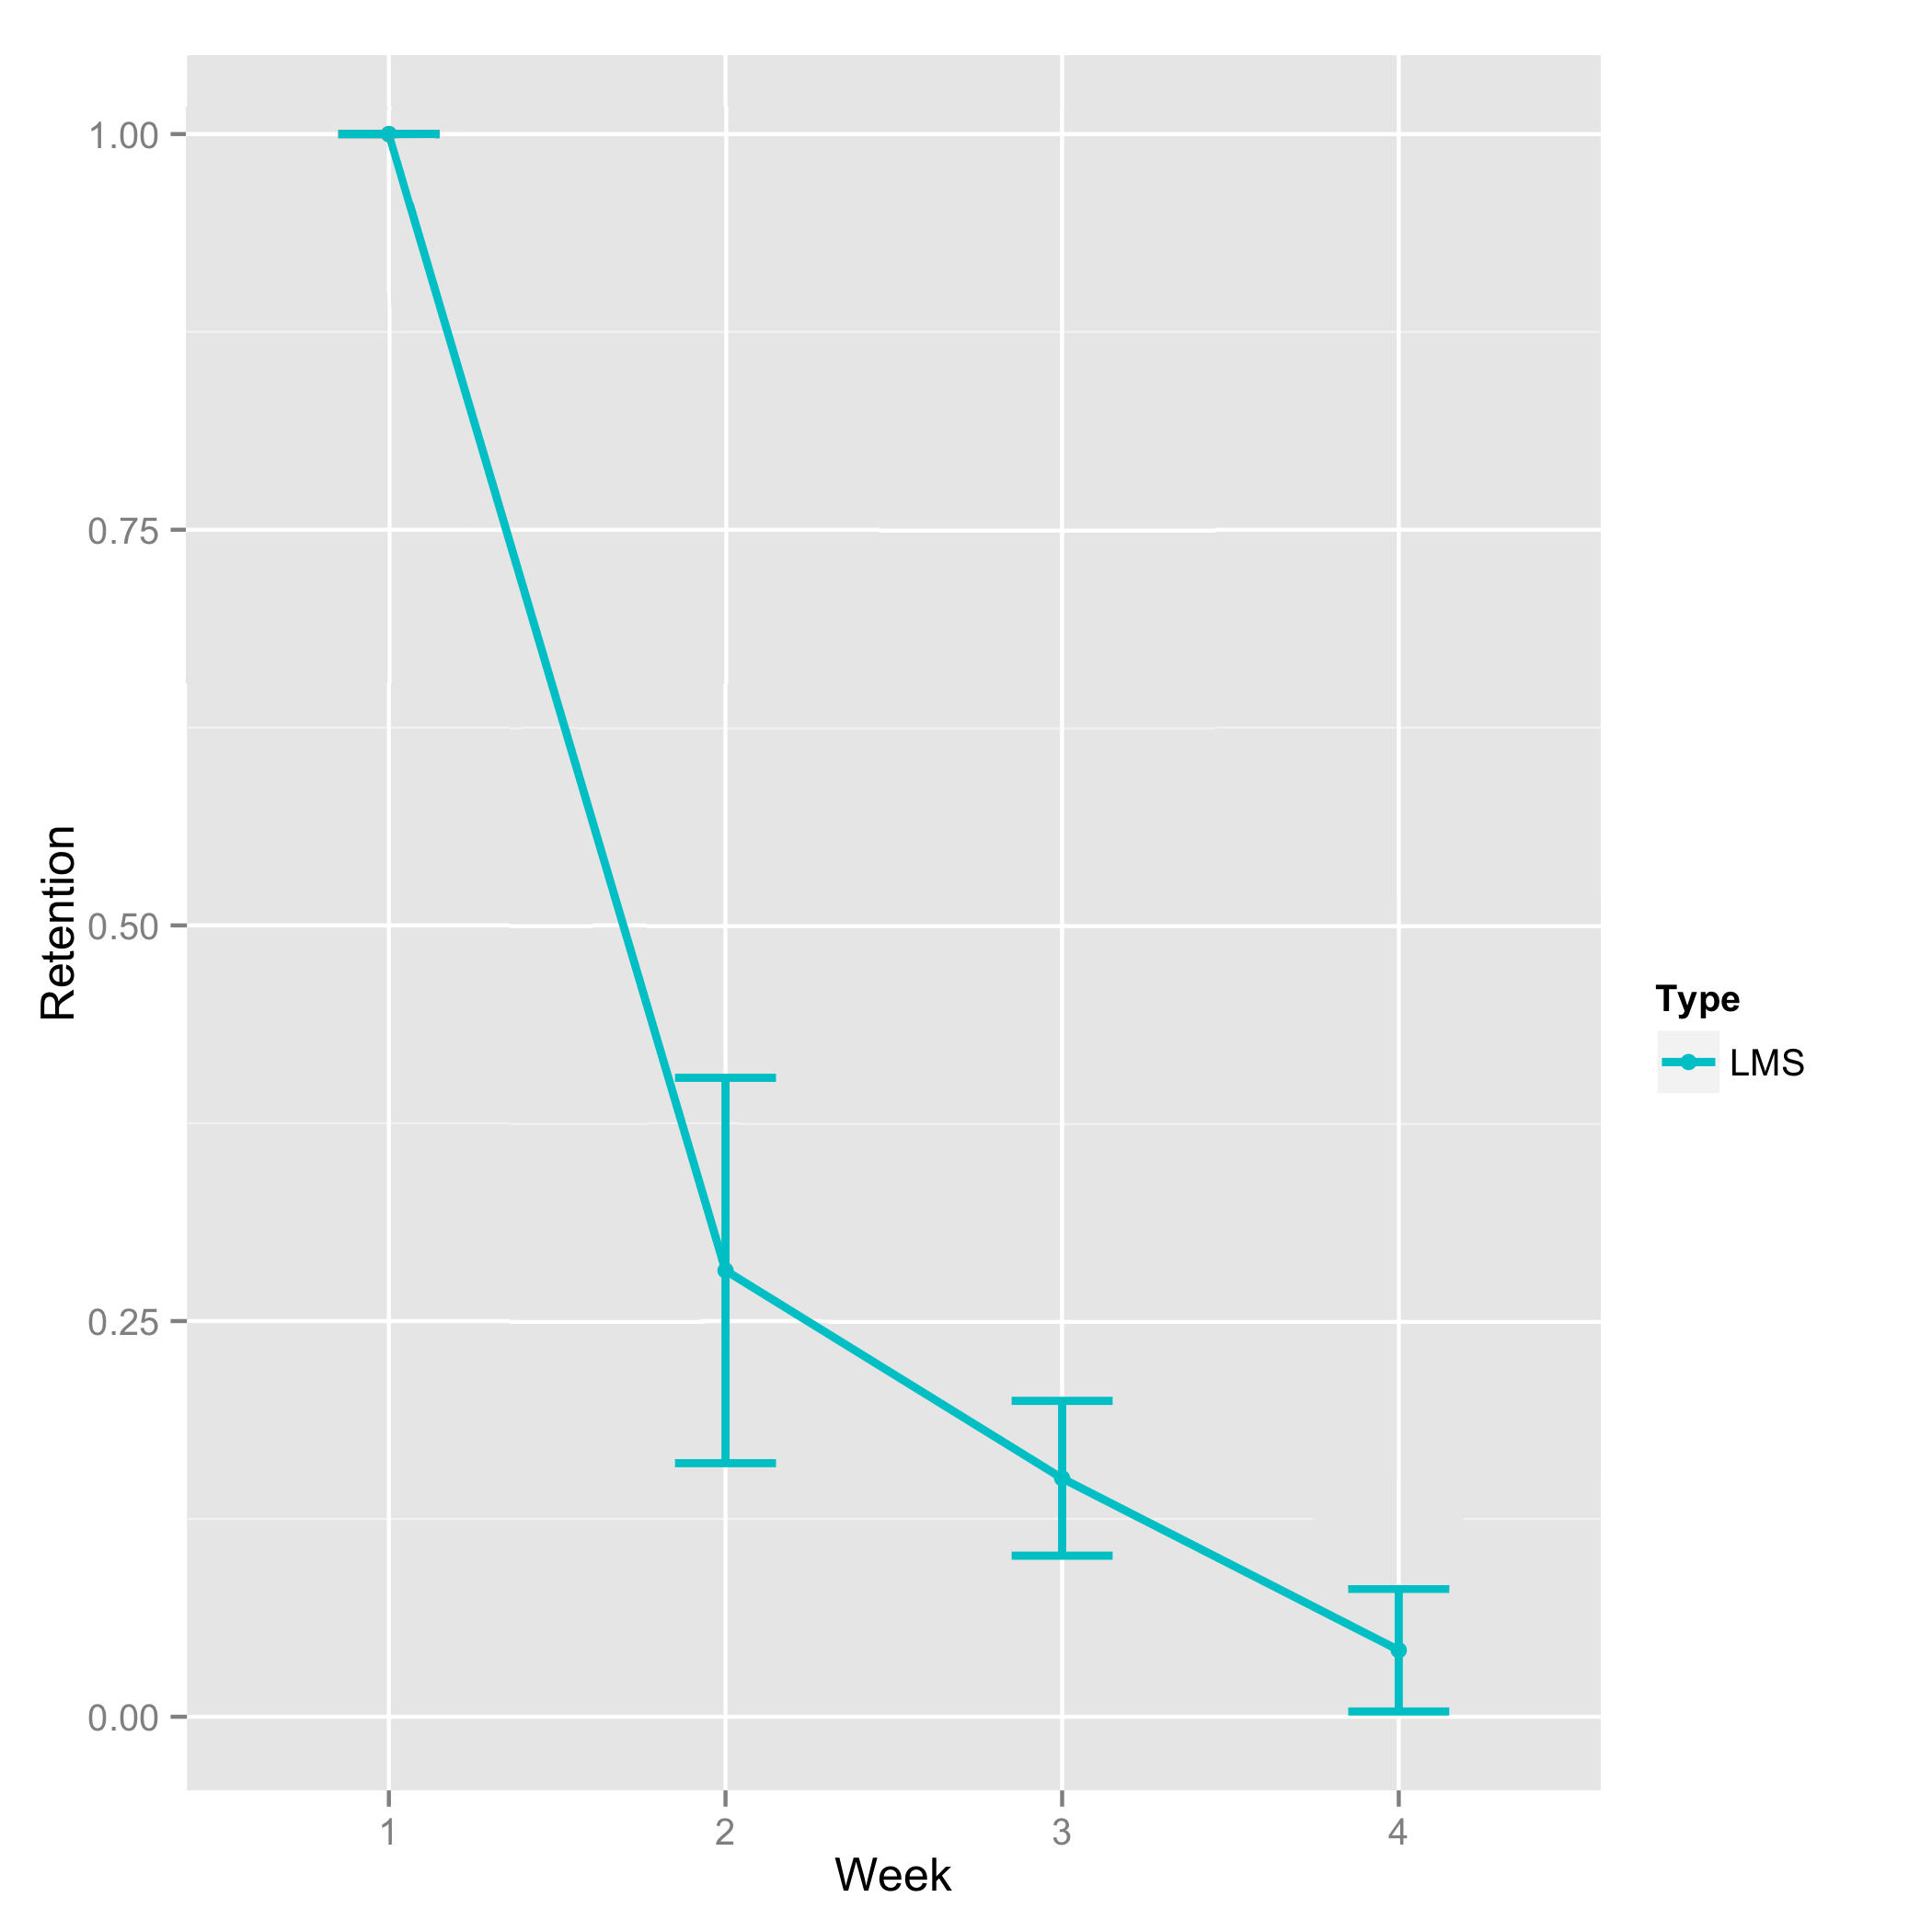 Low retention from Week 1 to Week 4 in the course.